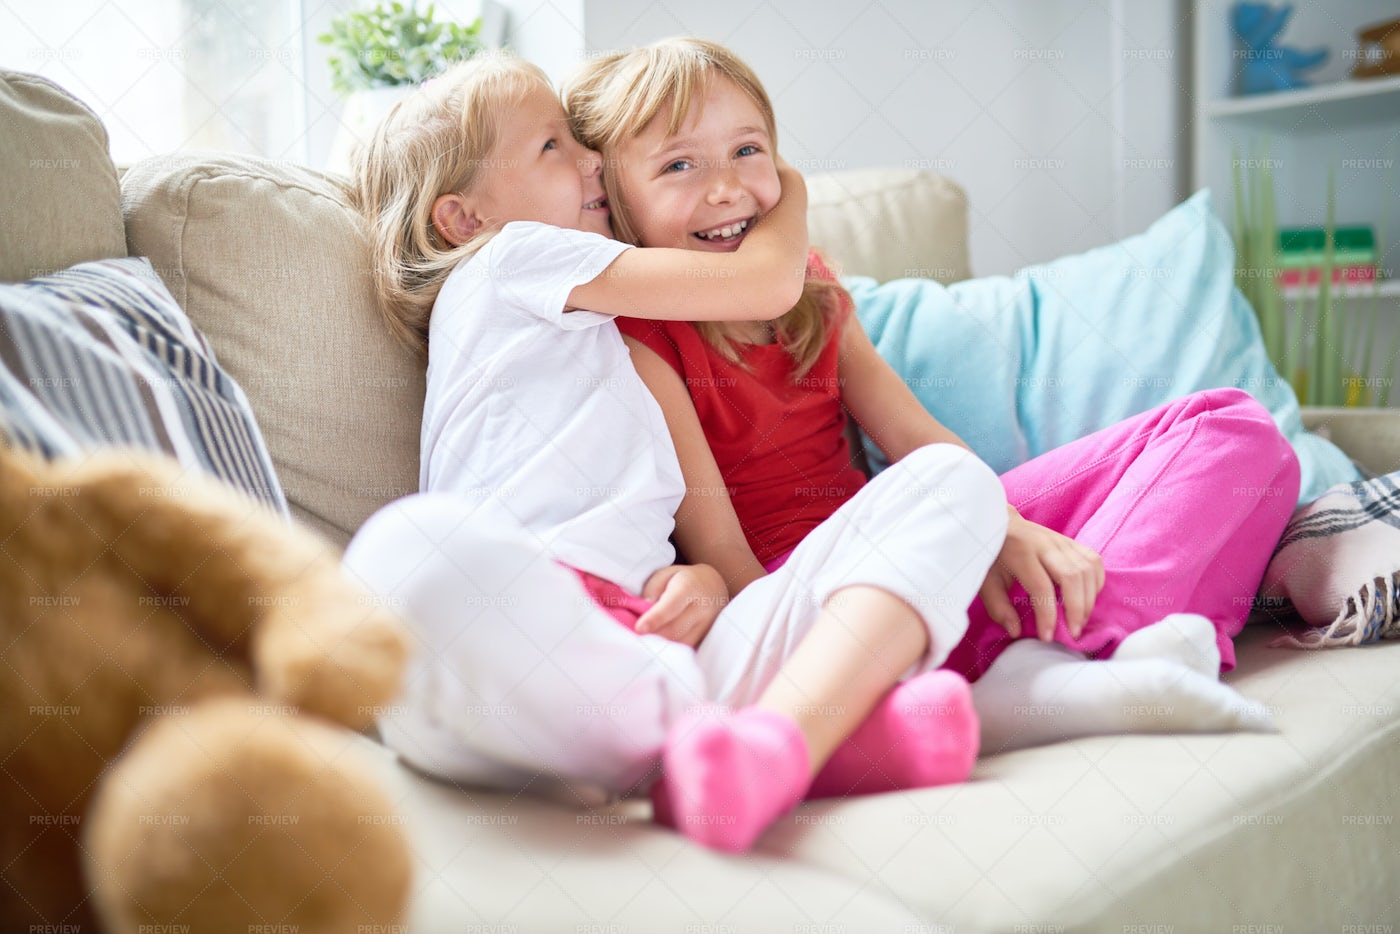 Sharing Secret With Pretty Sister: Stock Photos